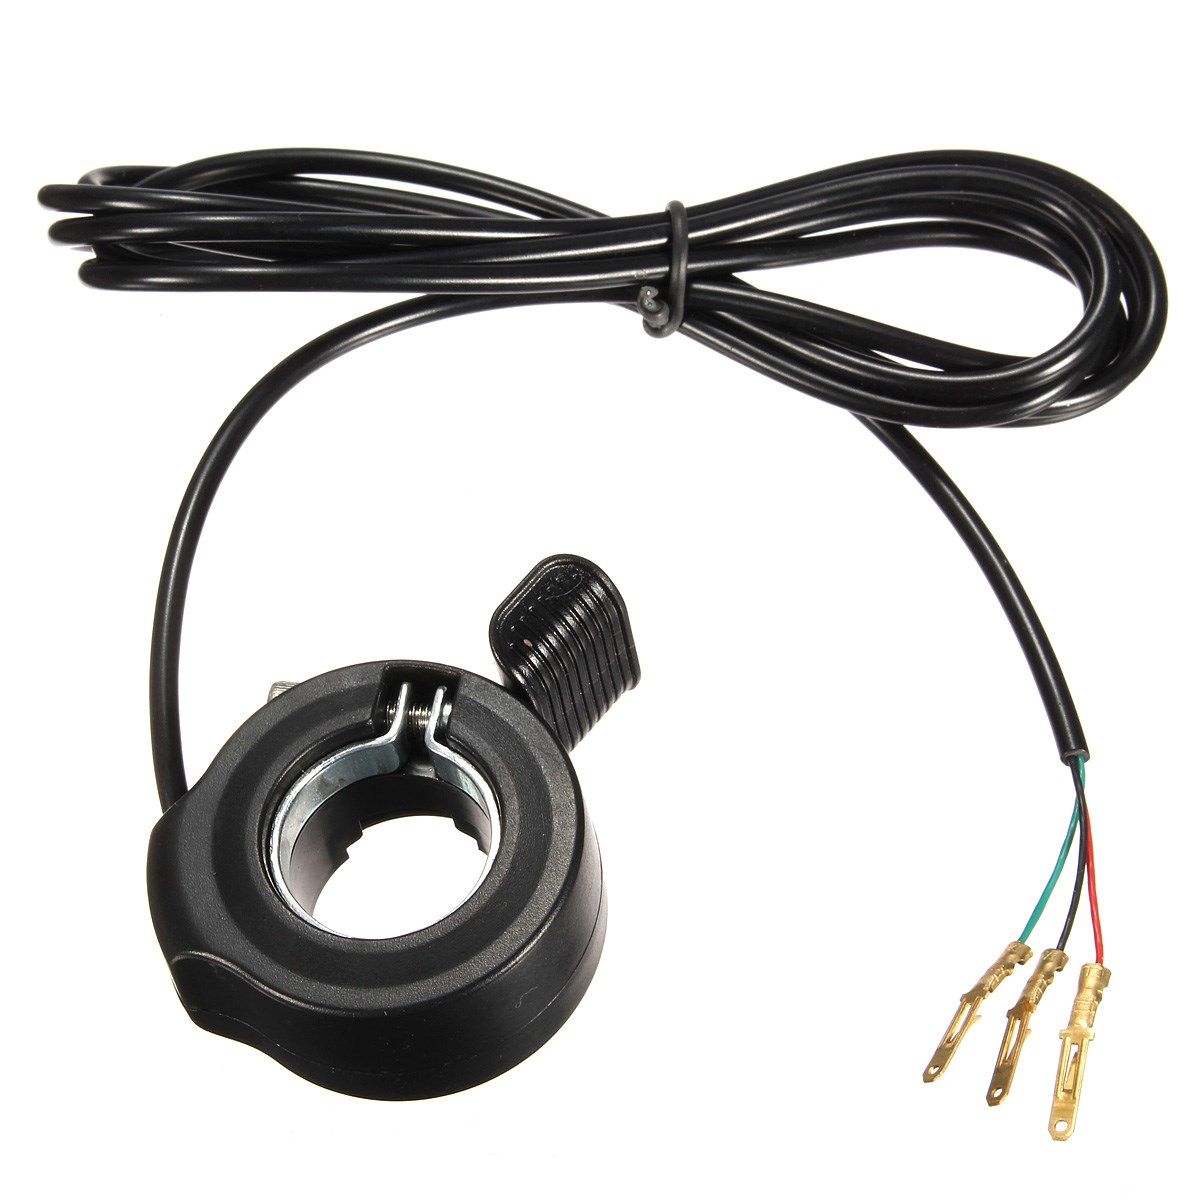 Electric Scooter Throttle Wiring Diagram Badlands Winch Remote Universal 7 8 39 Thumb Assembly For E Bike